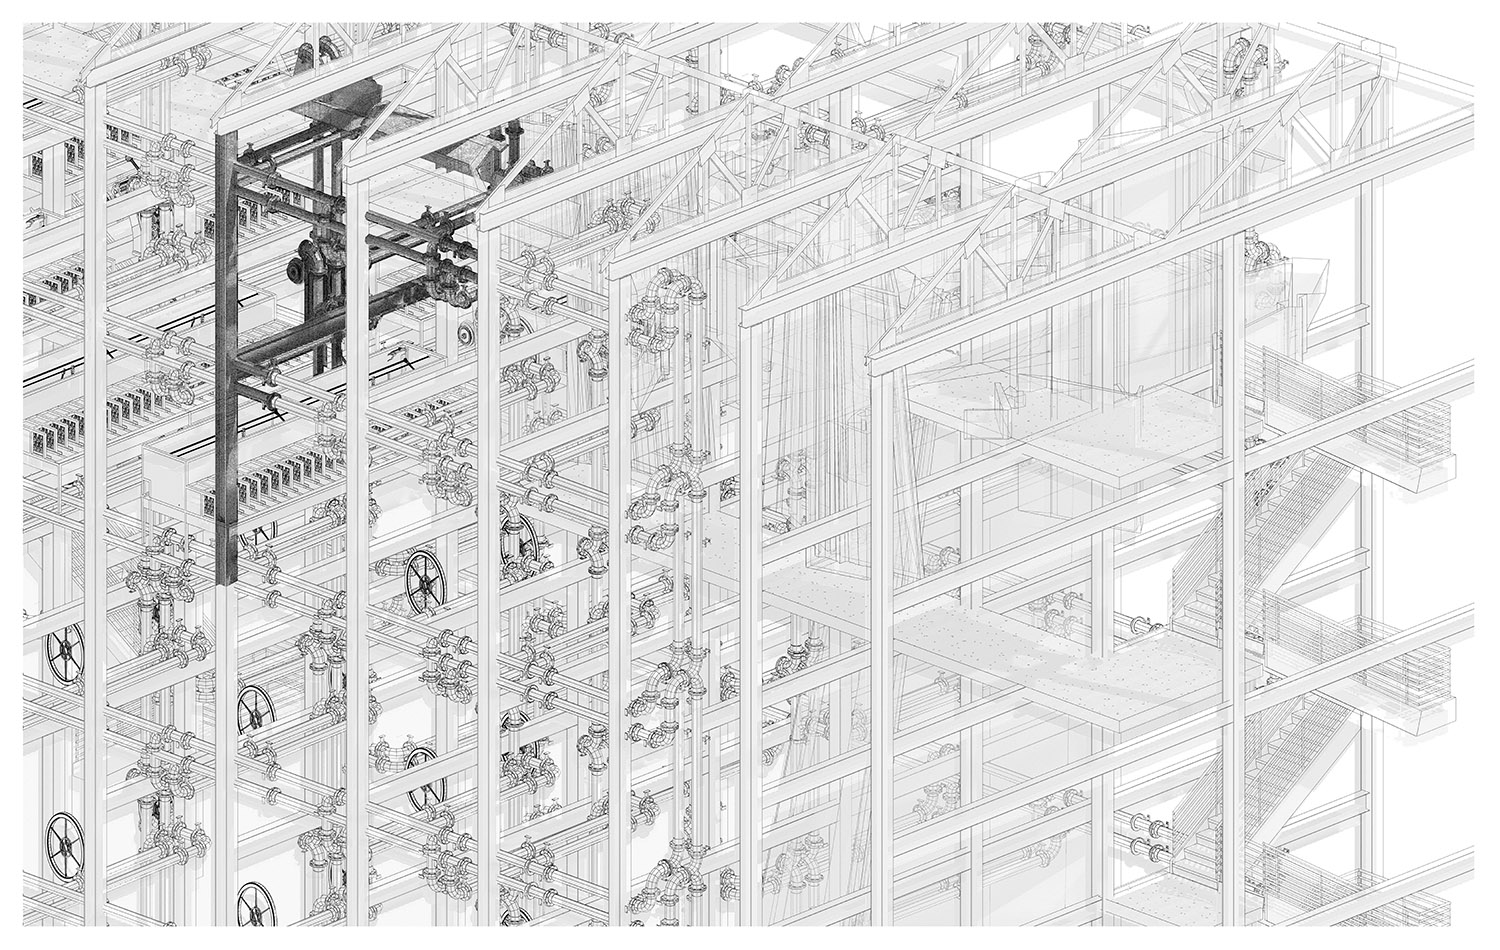 A complex digital drawing of an architectural structure